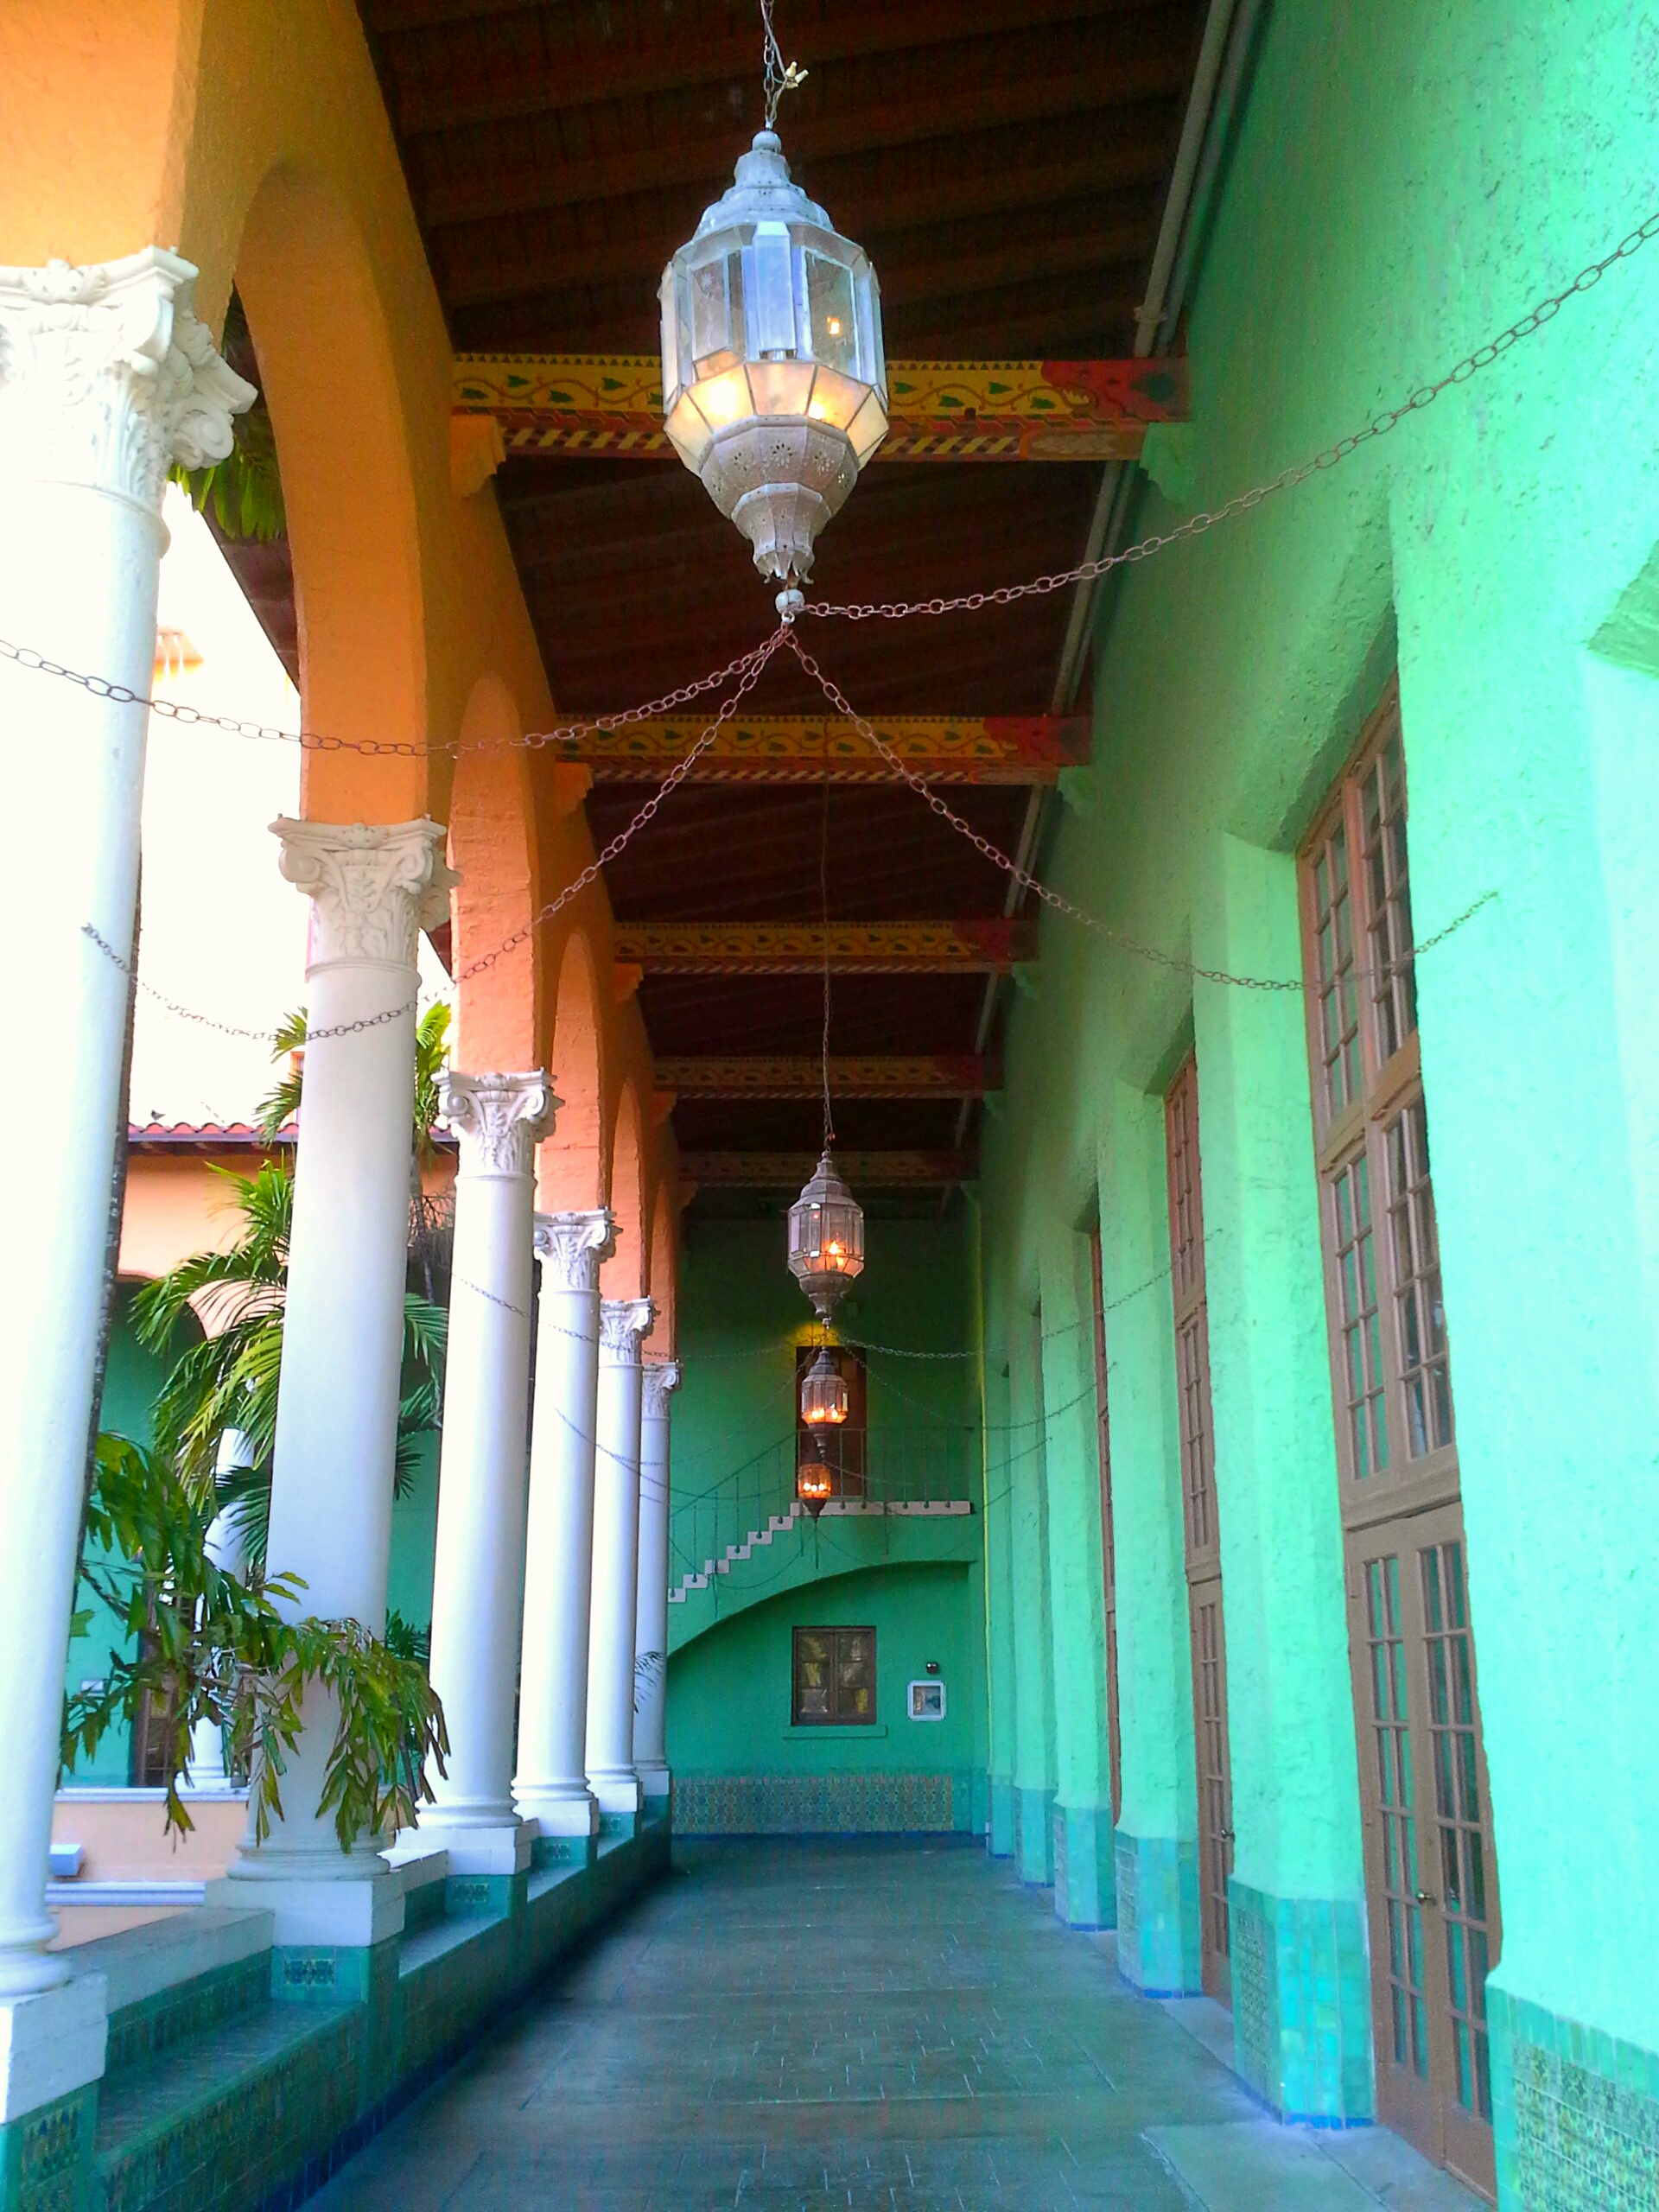 The Biltmore Hotel has an upper courtyard with a long corridor with bright green walls. This is a famous spot for engagement photos